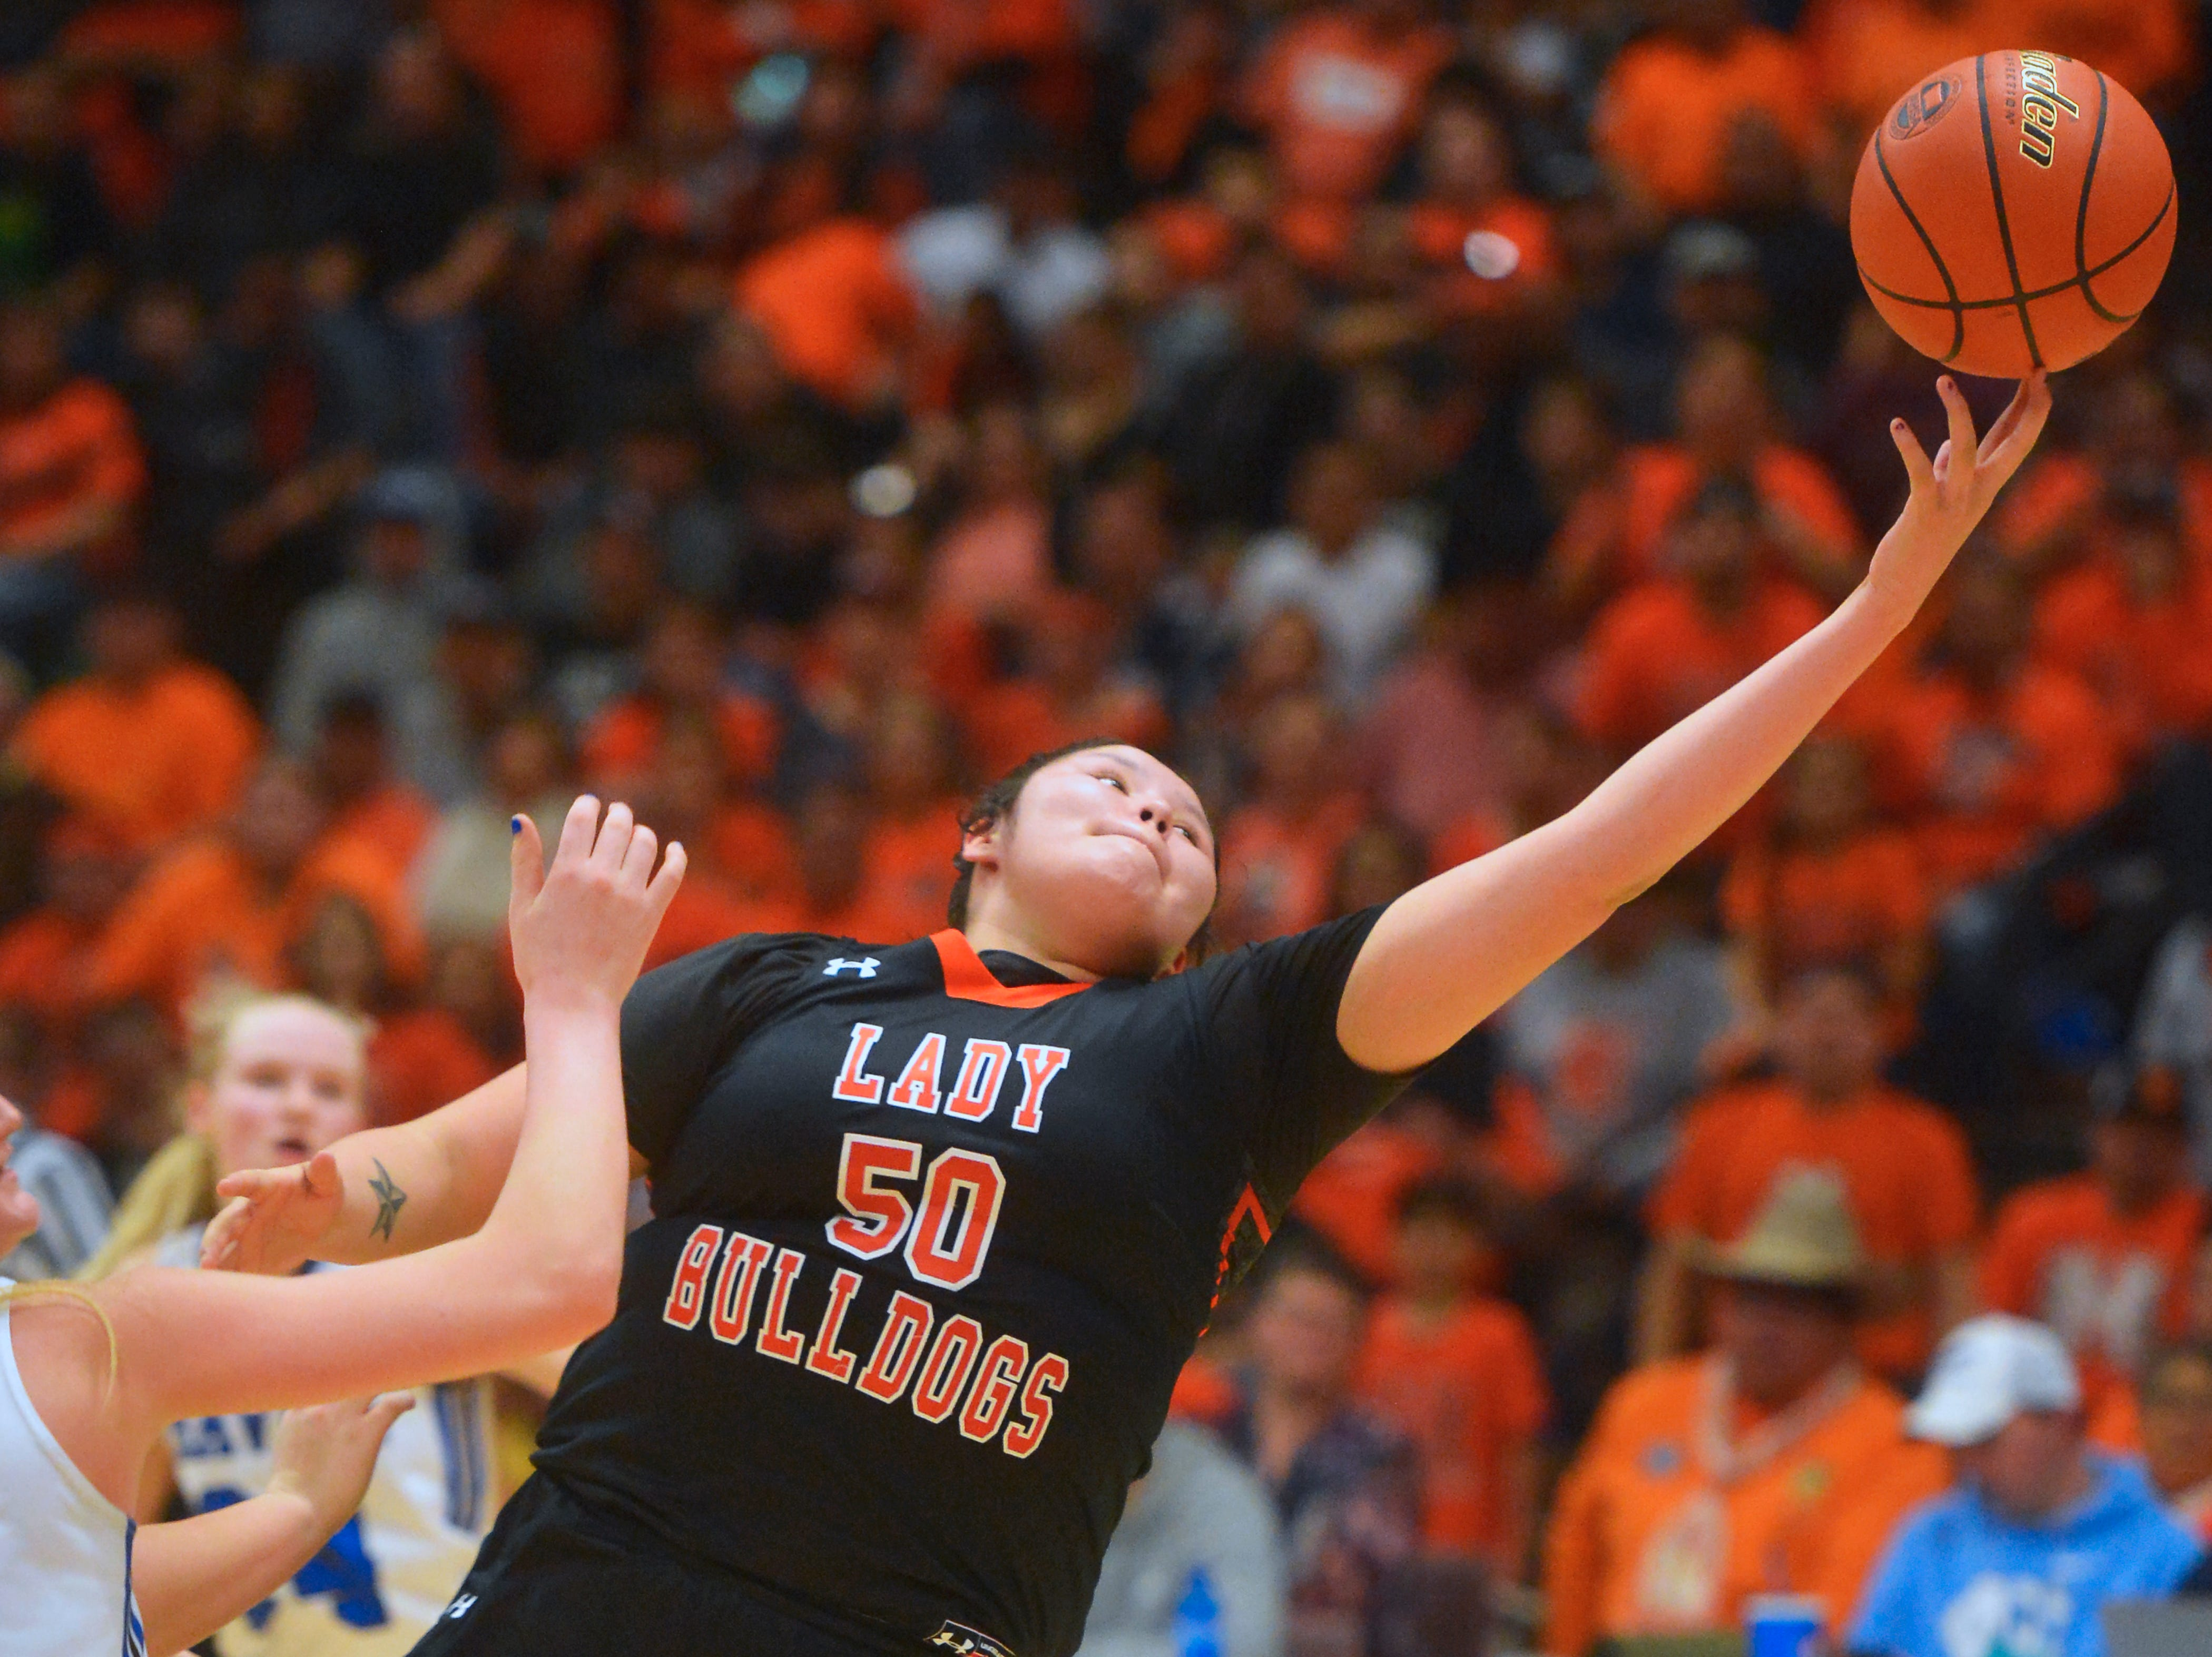 Hardin's Julianna Takes Horse attempts to pull in a rebound girls the title game of the State Class A Basketball Tournament in the Four Seasons Arena, Saturday.